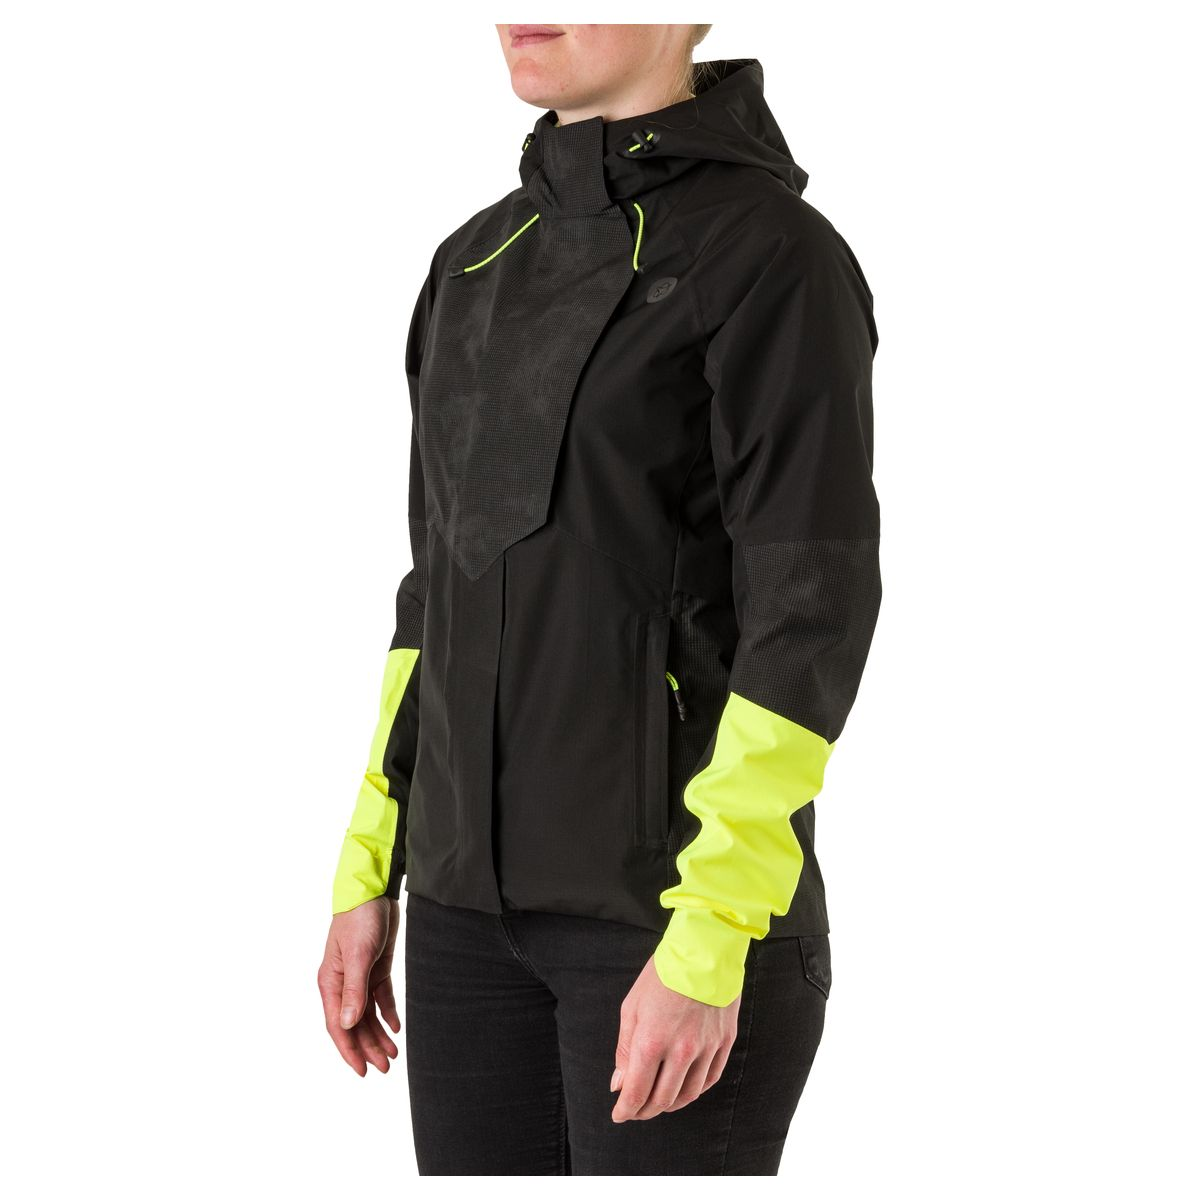 Tech Regenjas Commuter Dames Hi-vis & Reflection fit example